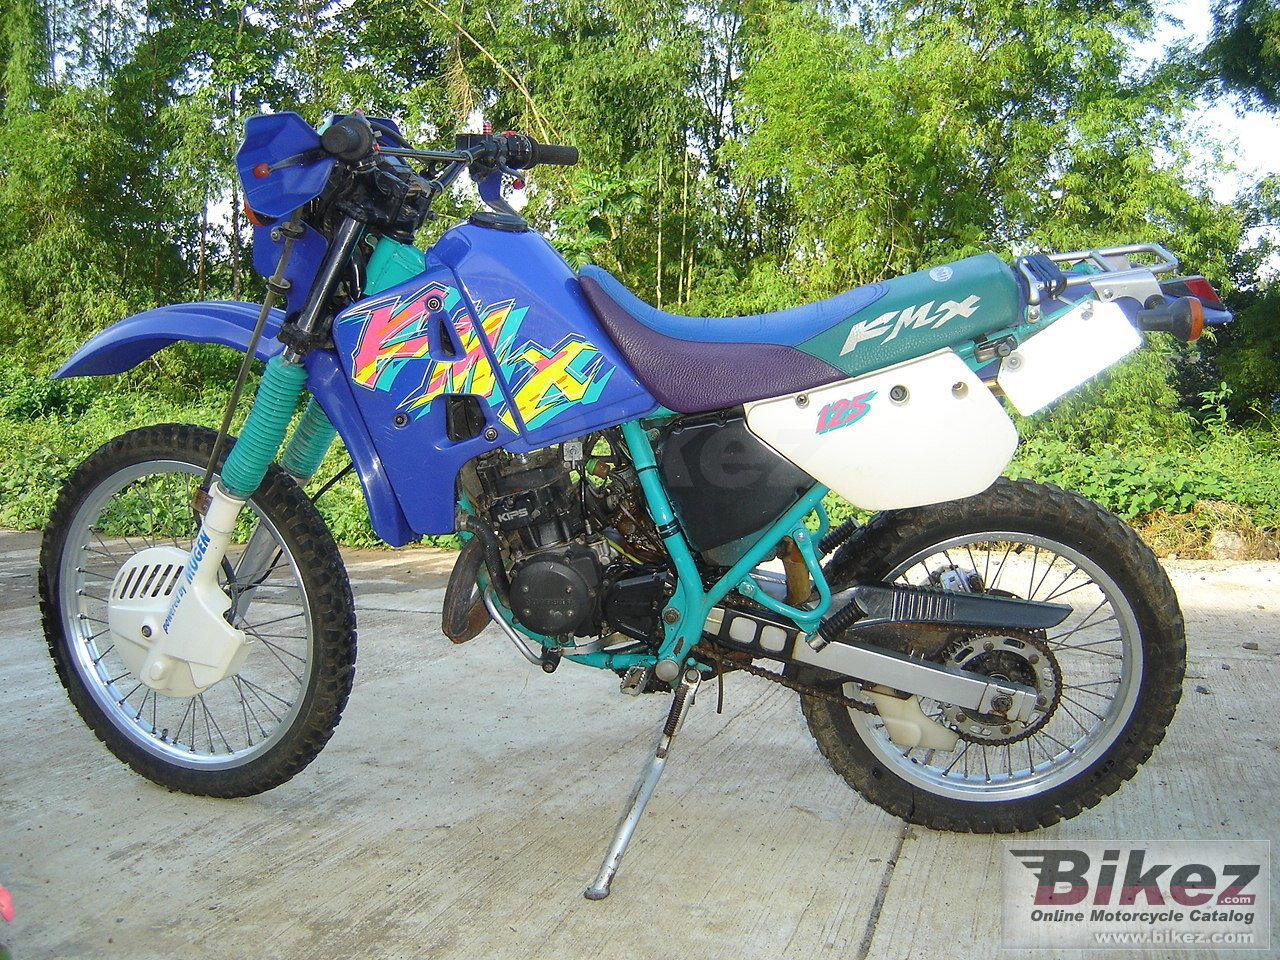 Big  kmx 125 picture and wallpaper from Bikez.com